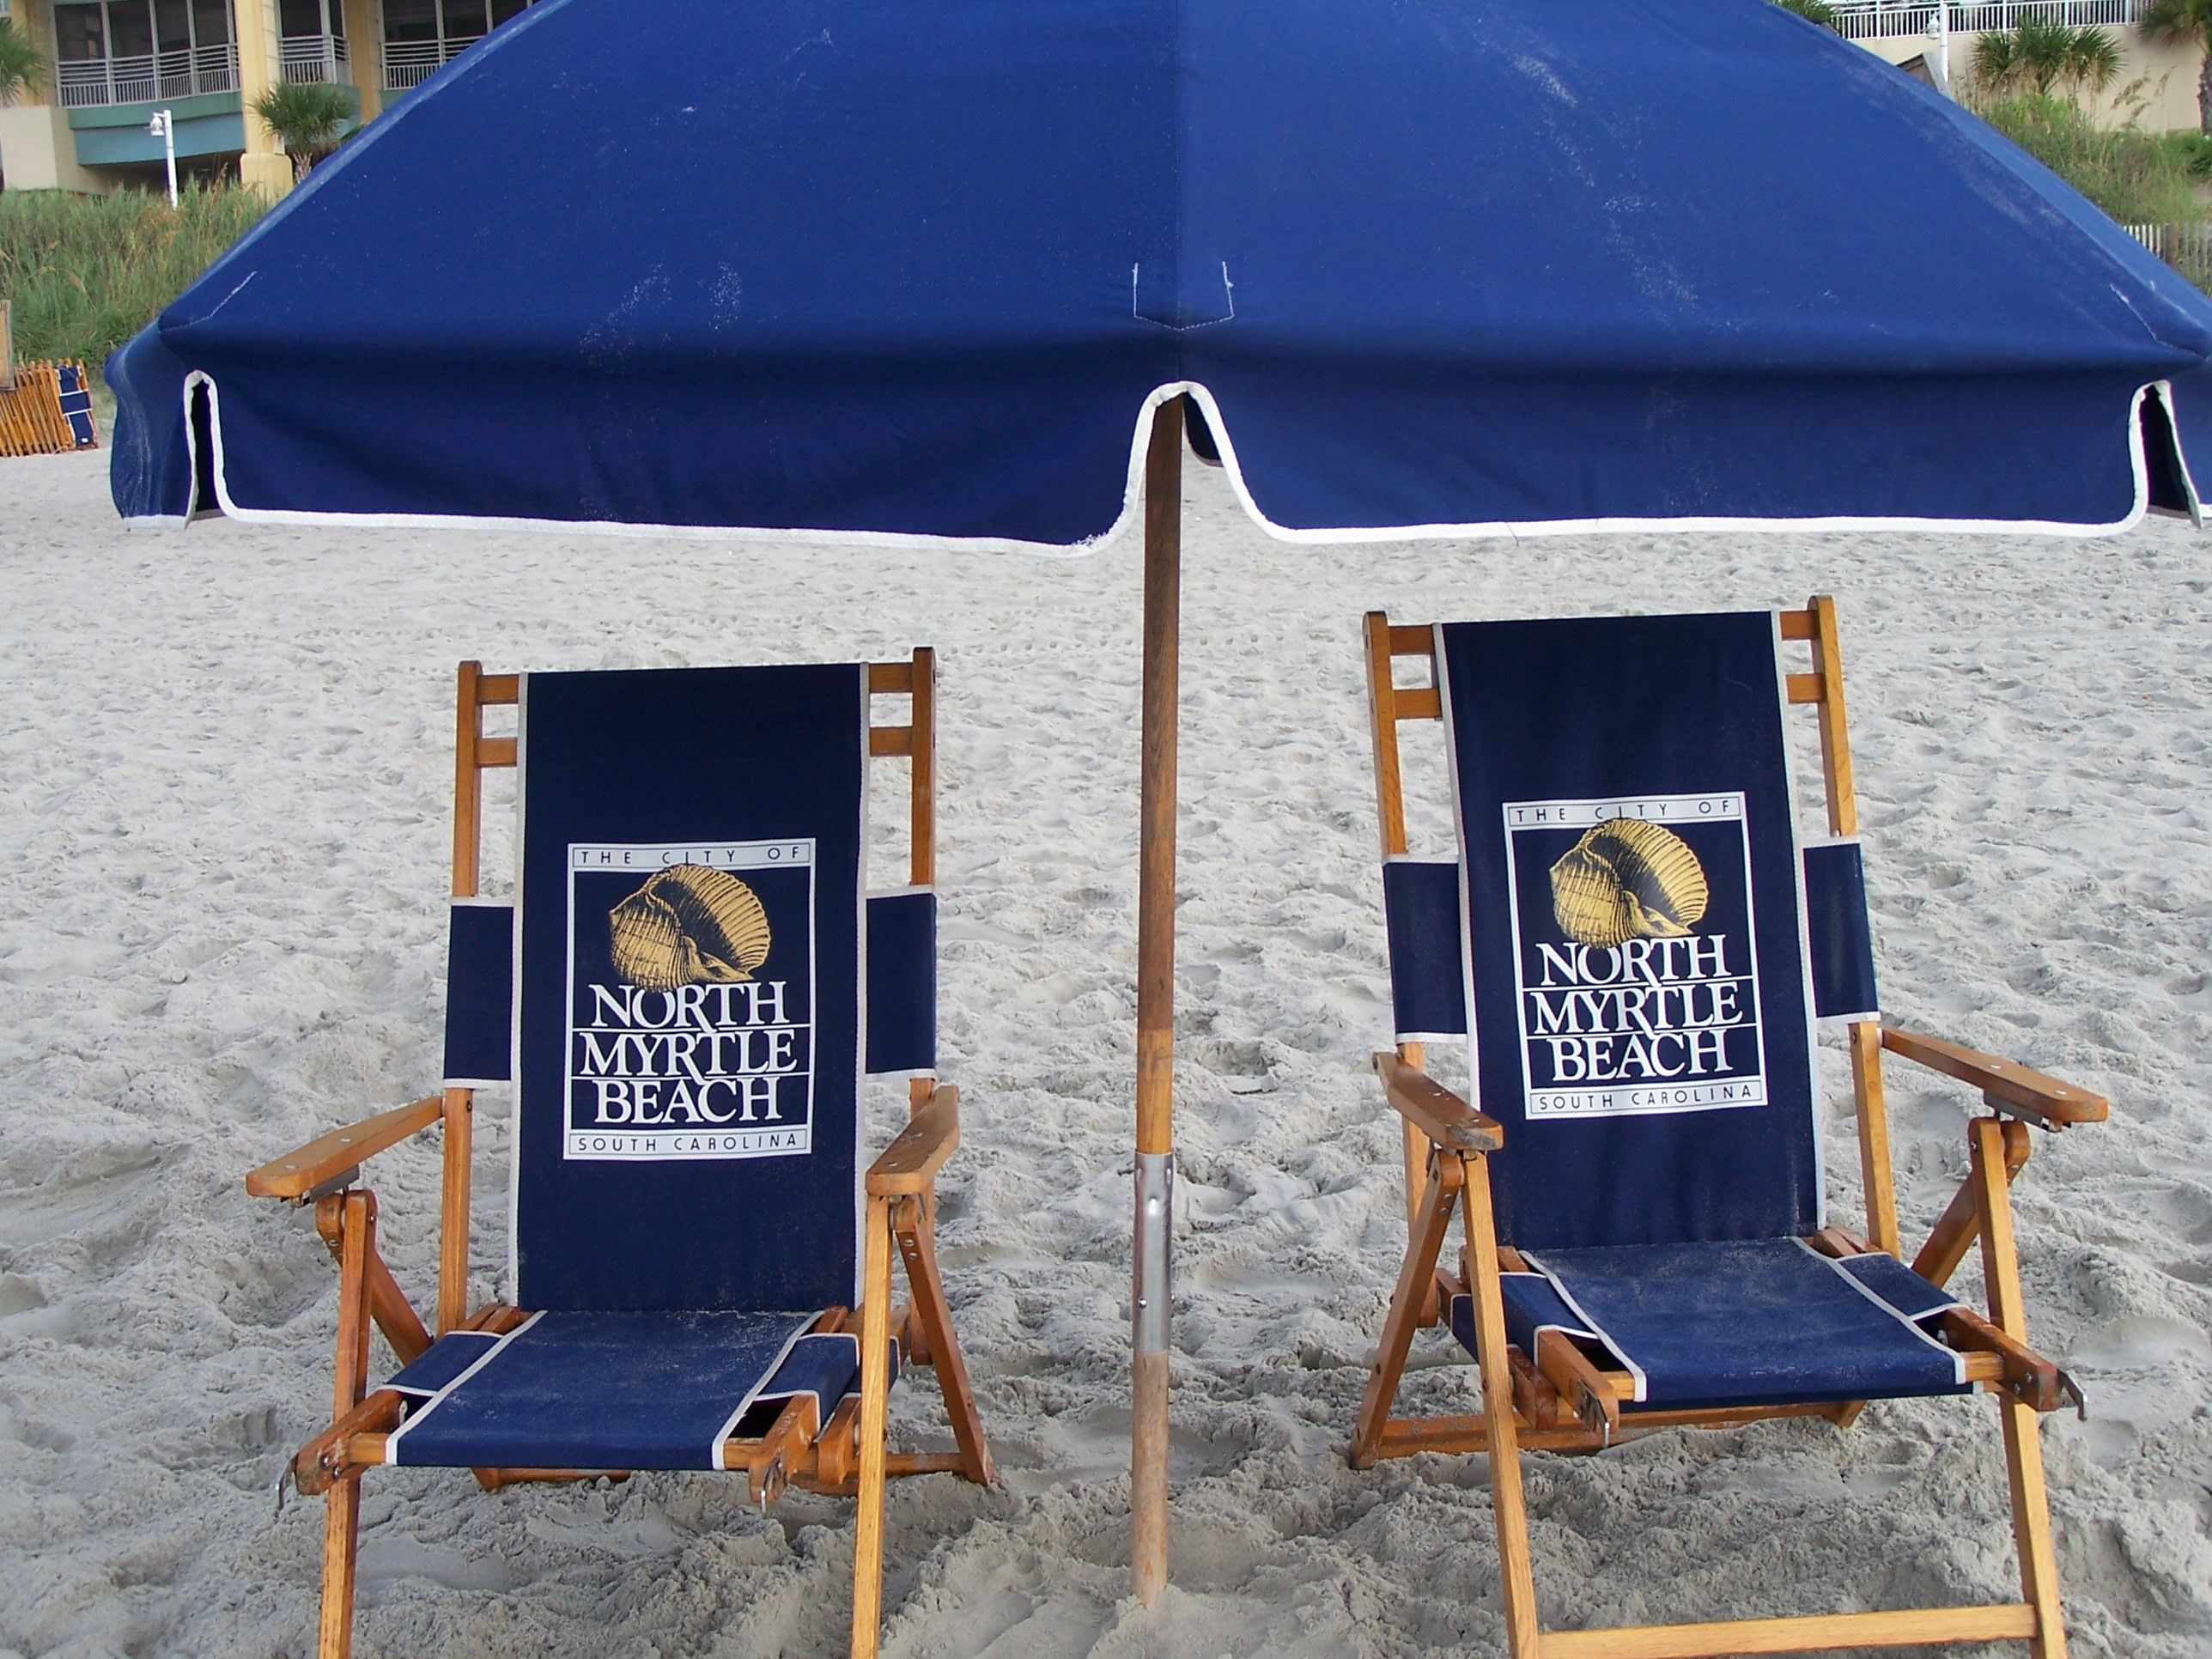 3 Weeks From Today I Will Be In These Chairs In North Myrtle Beach Sorth Carolina Cannot Wait Myrtle Beach Pictures North Myrtle Beach Myrtle Beach